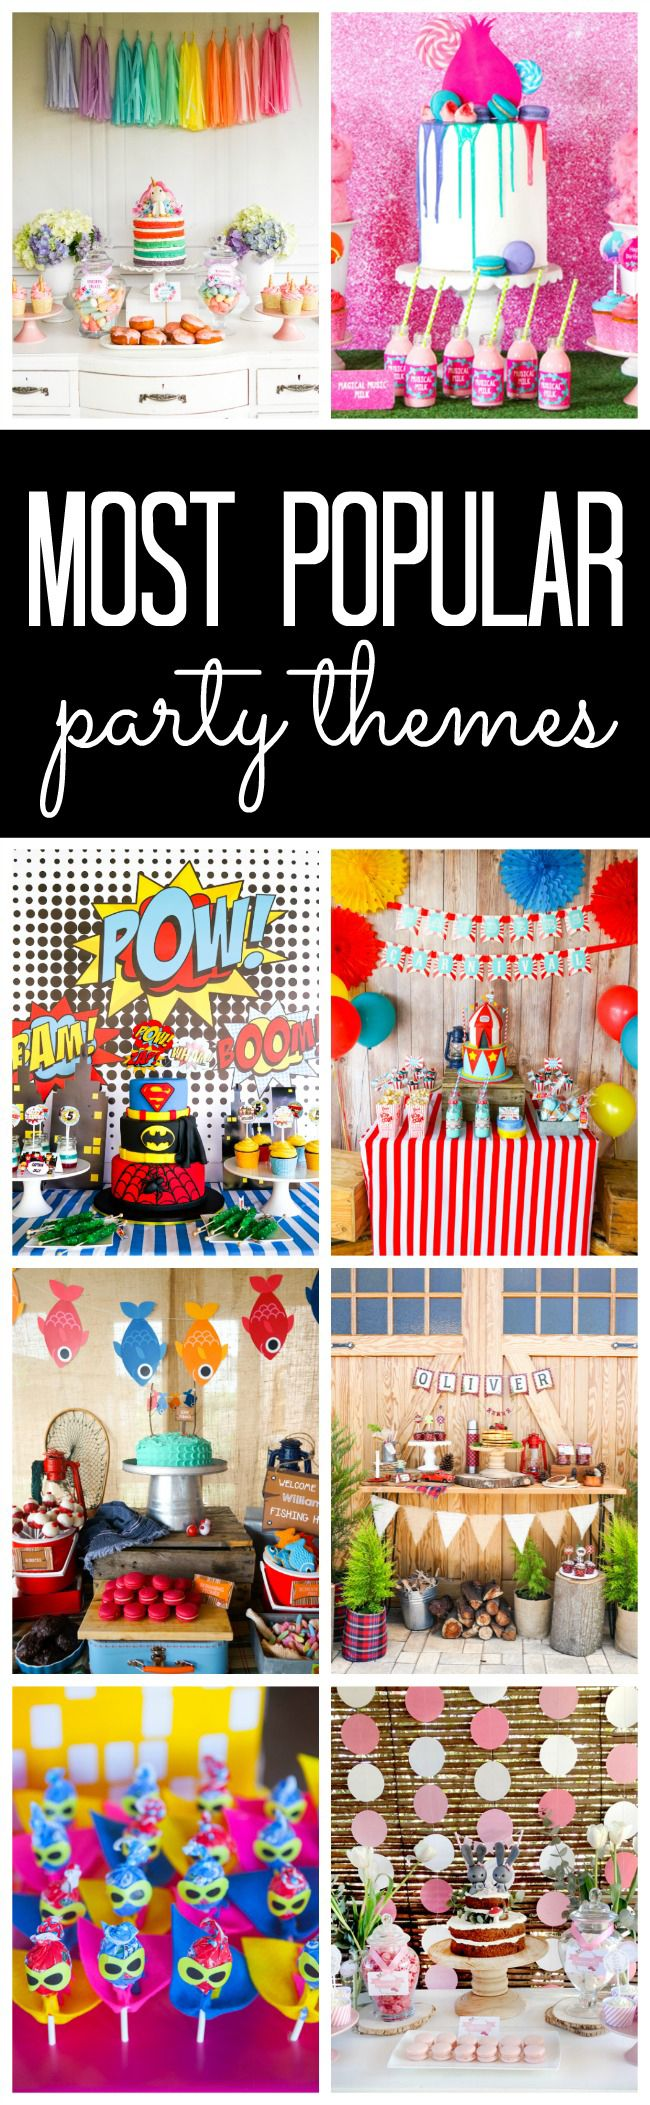 10 Most Popular Kids Party Themes Party Themes Kids Party Themes Birthday Party Activities